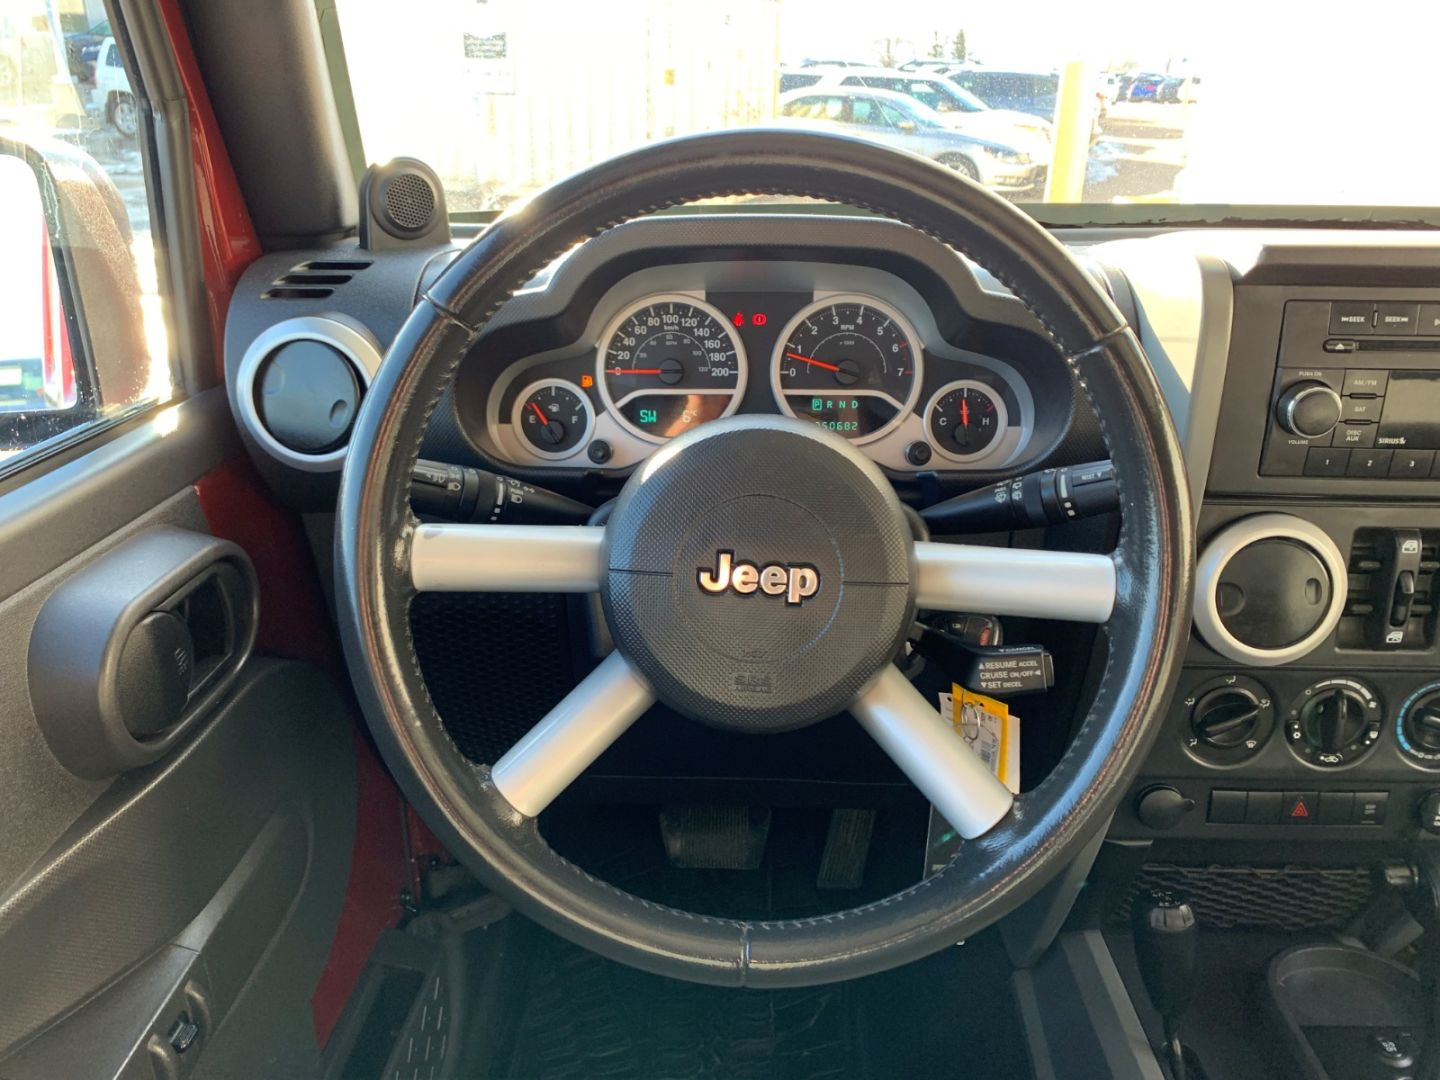 2009 Jeep Wrangler Unlimited Sahara for sale in Edmonton, Alberta